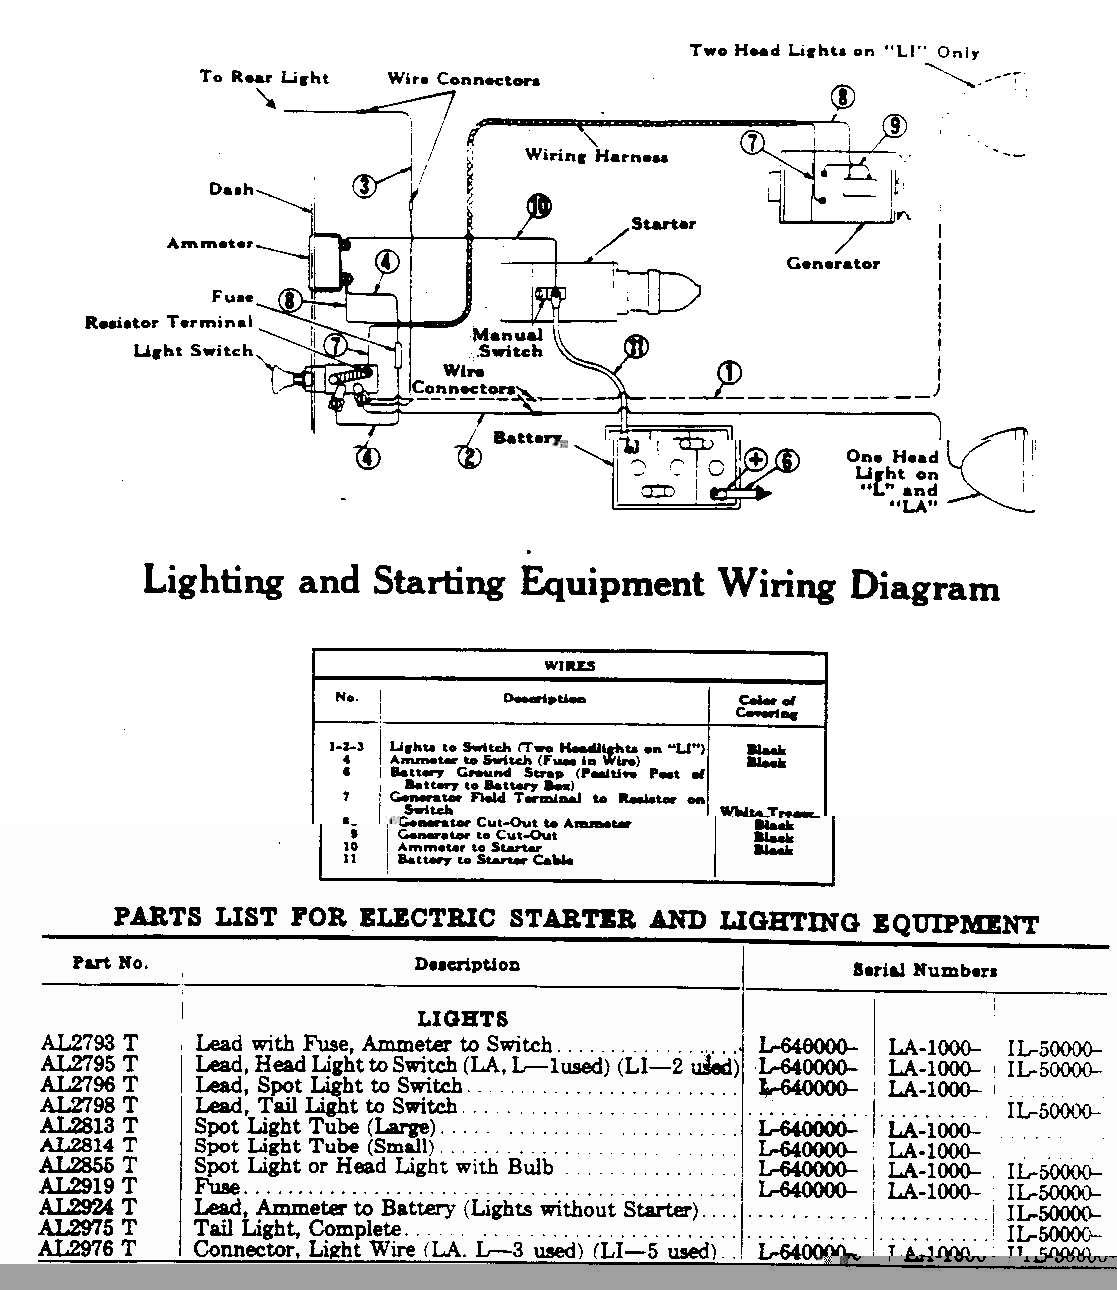 Case Vac Tractor Wiring Diagram Trusted 208 Rusty Acres Ranch Rh Vintagetractors Com 1175 Starter Single Phase